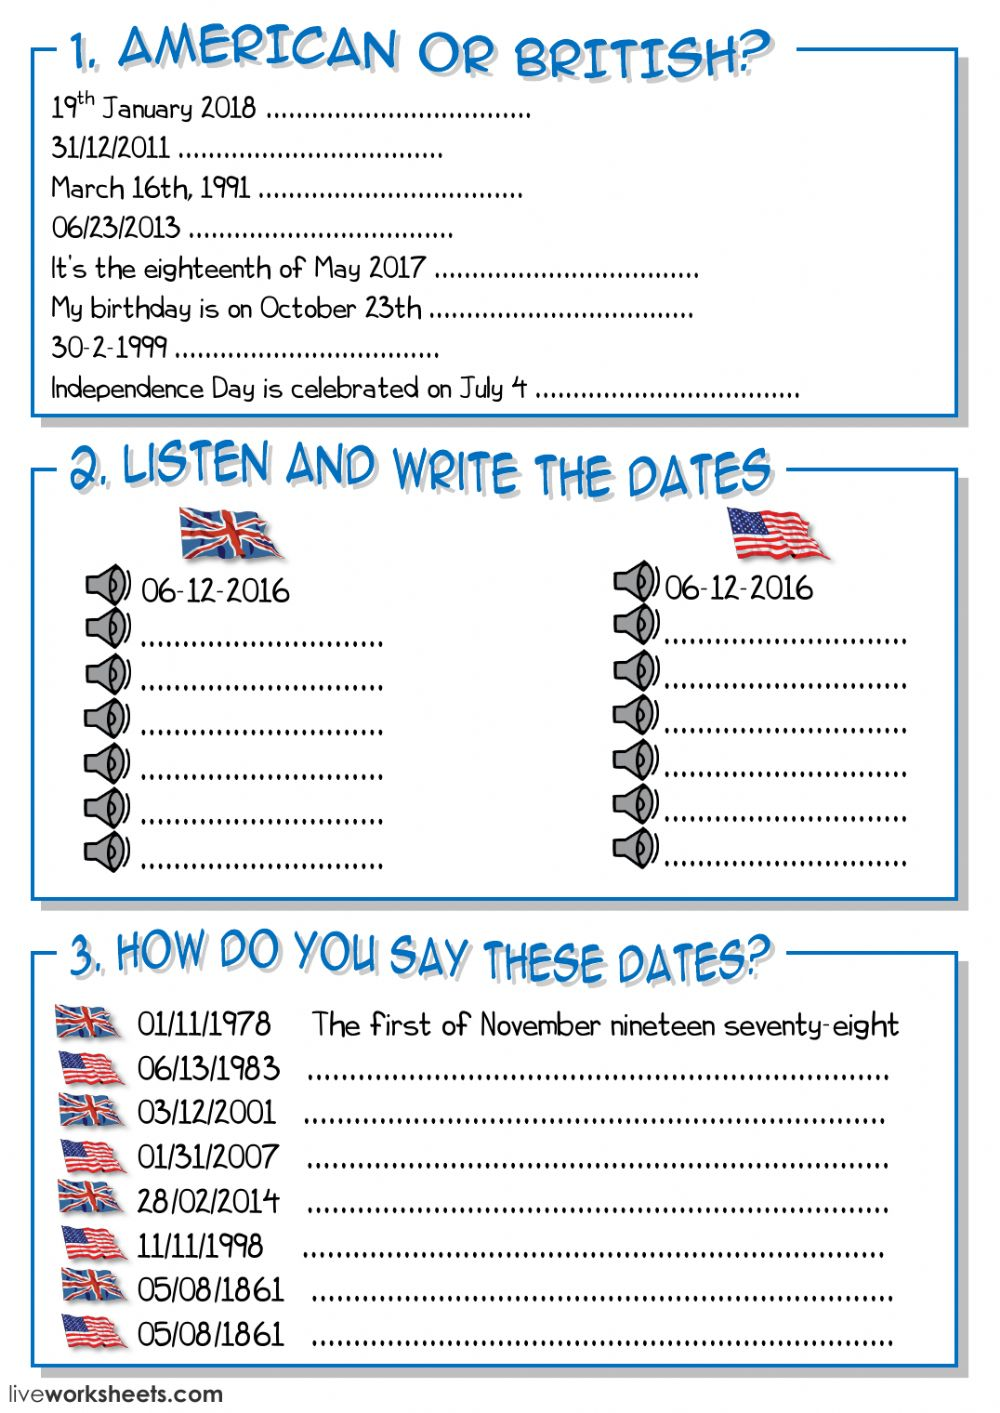 how to write and say dates in english